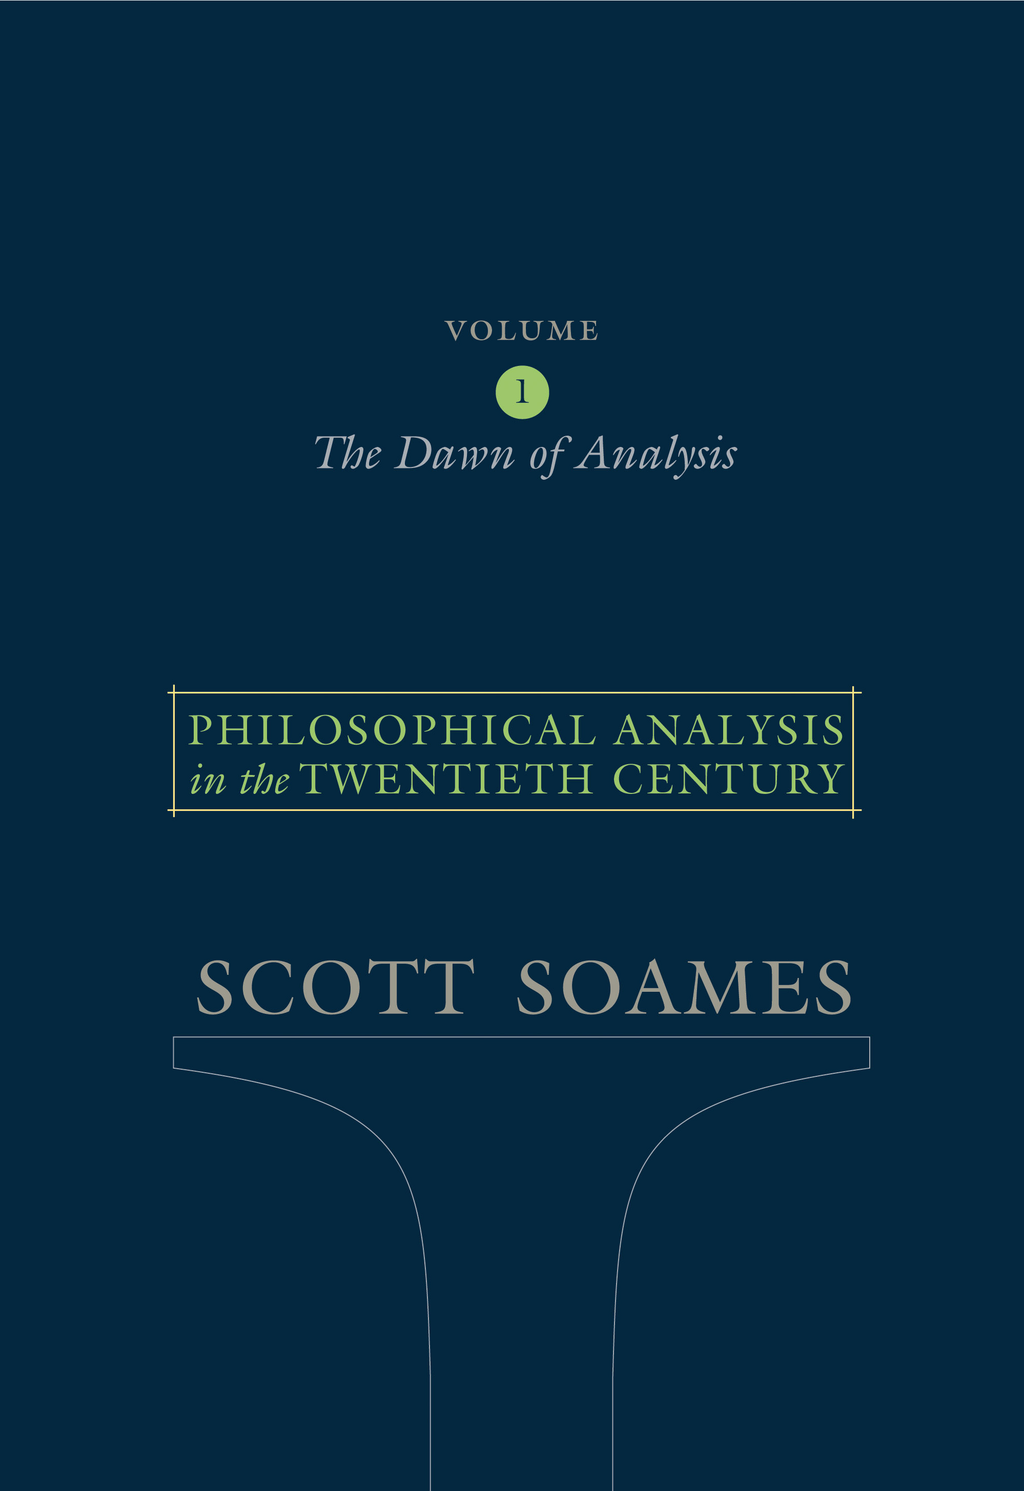 Philosophical Analysis in the Twentieth Century, Volume 1 By: Scott Soames